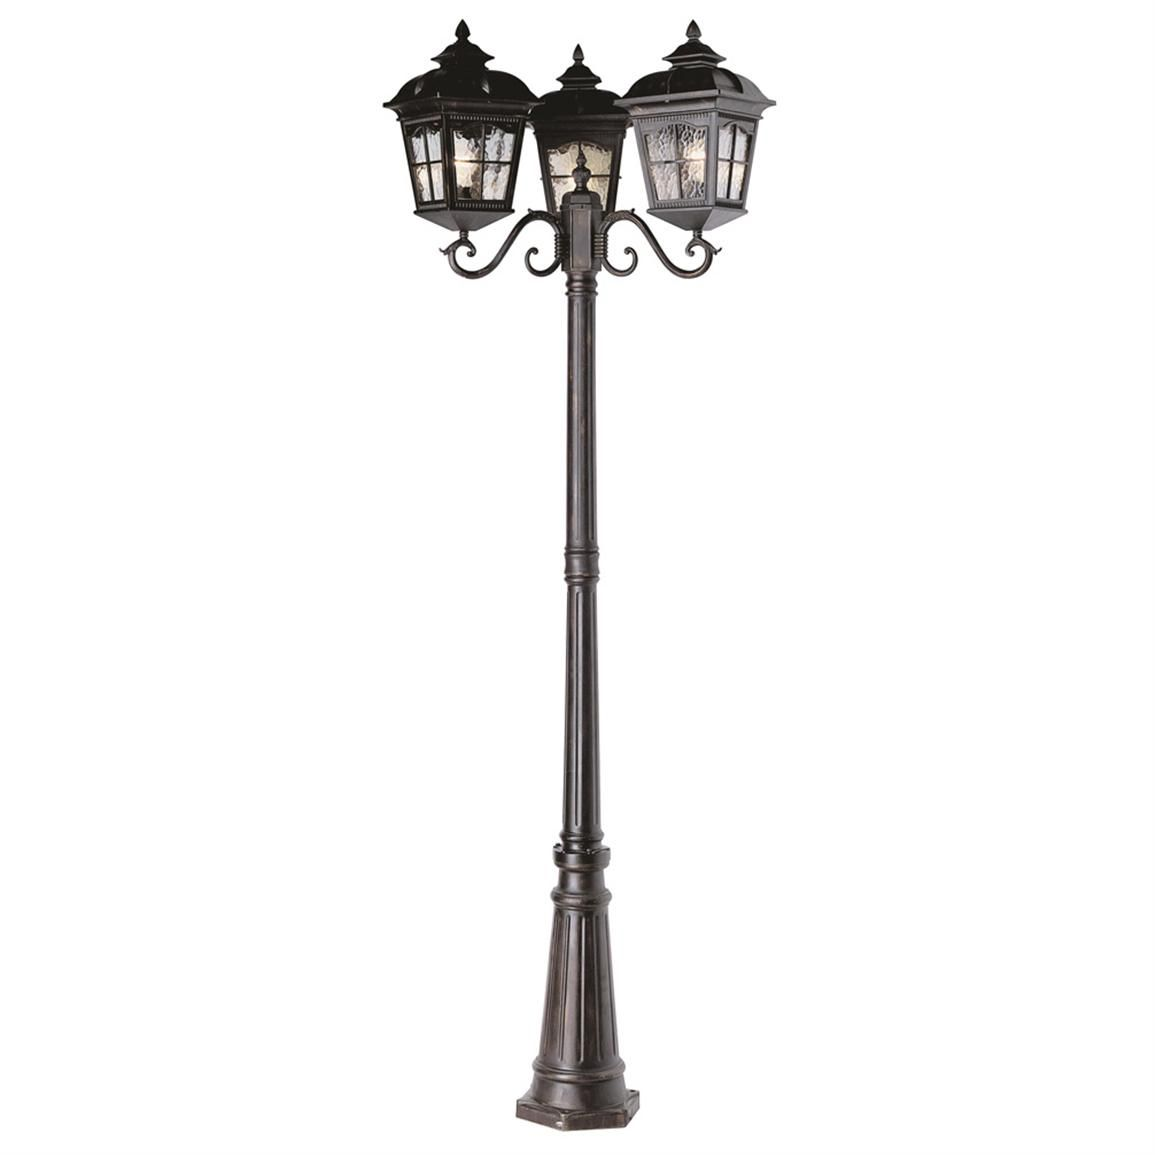 I Wanna Get An Antique Lamp Pole Tattoo I Couldnt Find A